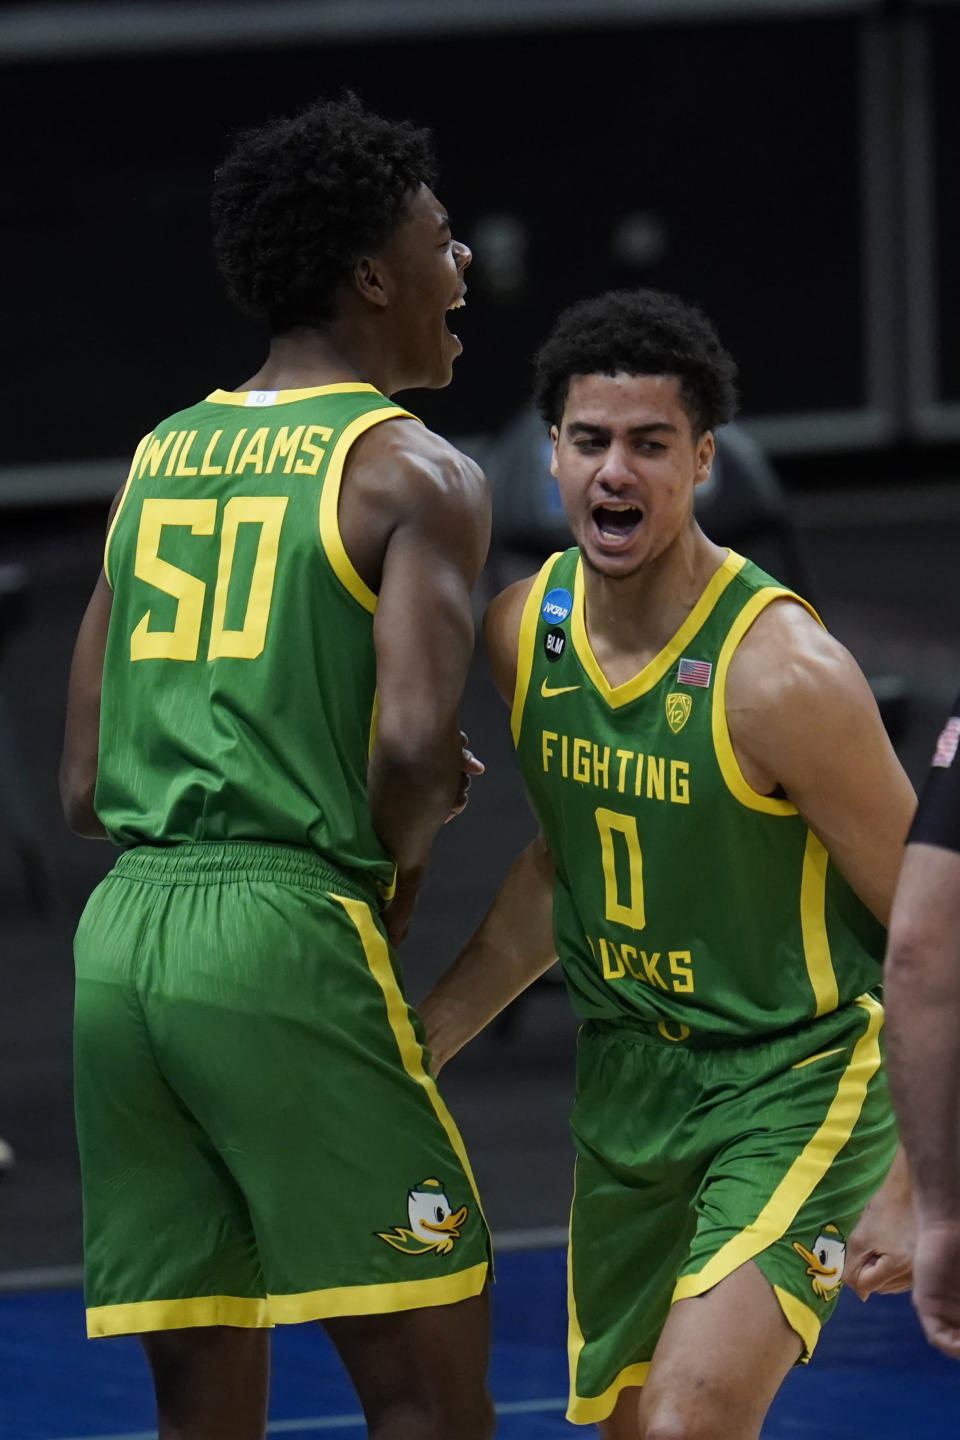 Oregon forward Eric Williams Jr. (50) and Will Richardson (0) celebrate a basket during the first half of a men's college basketball game in the second round of the NCAA tournament at Bankers Life Fieldhouse in Indianapolis, Monday, March 22, 2021. (AP Photo/Paul Sancya)